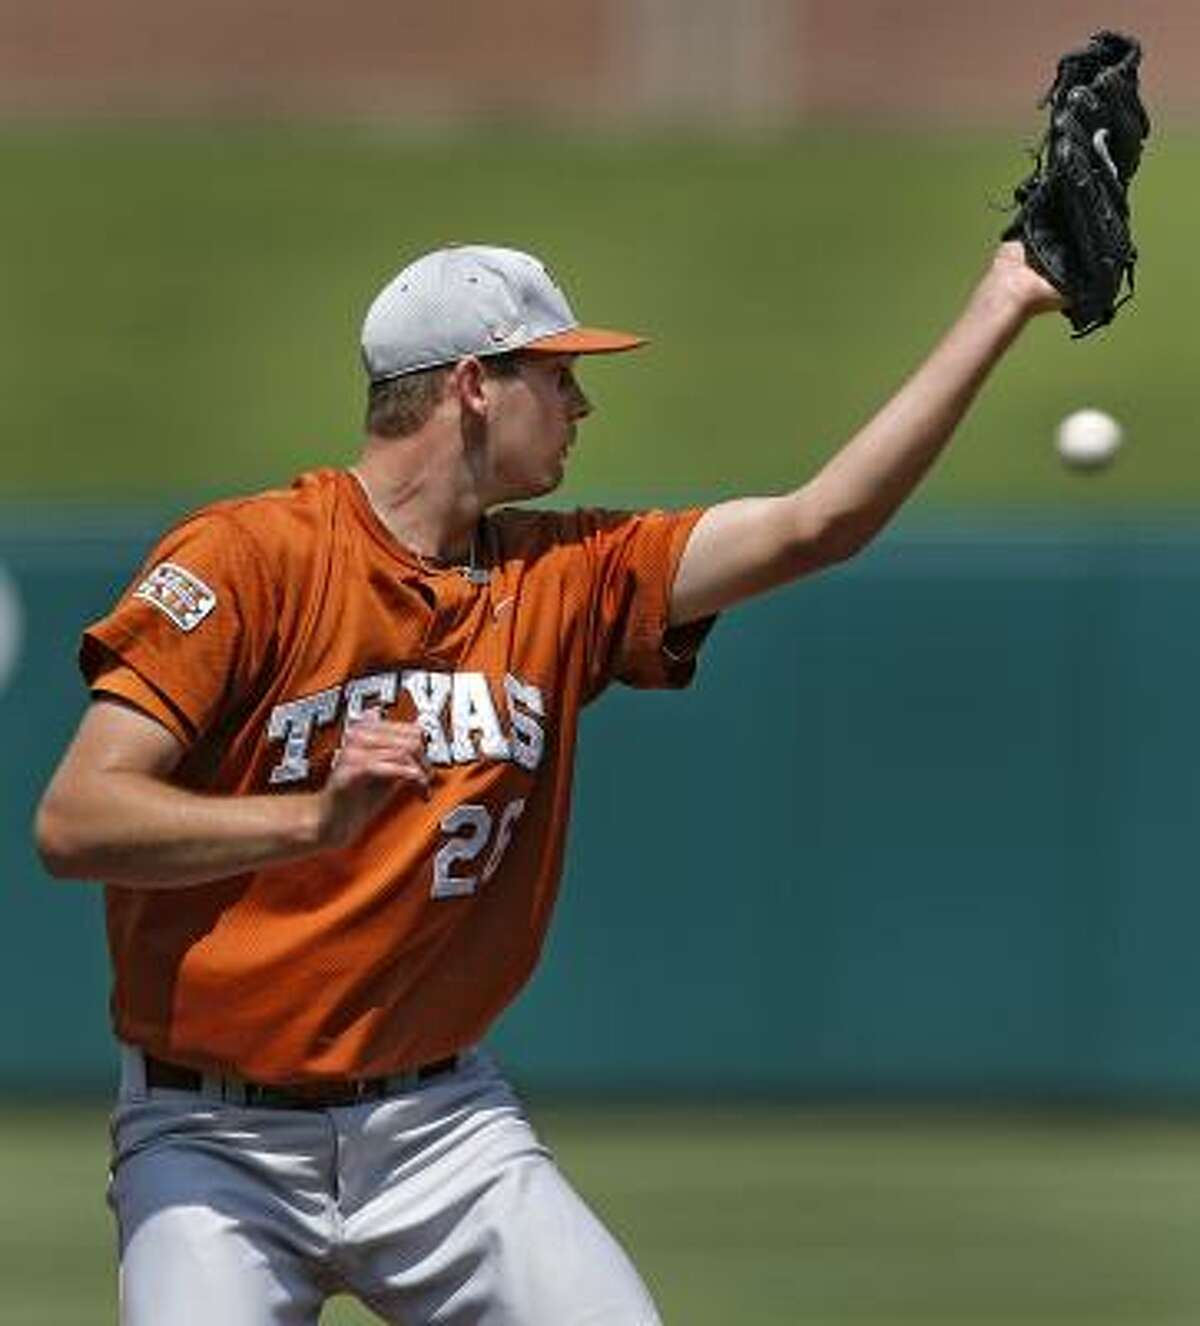 Texas pitcher Taylor Jungmann misses a line drive during the loss to Texas Tech.